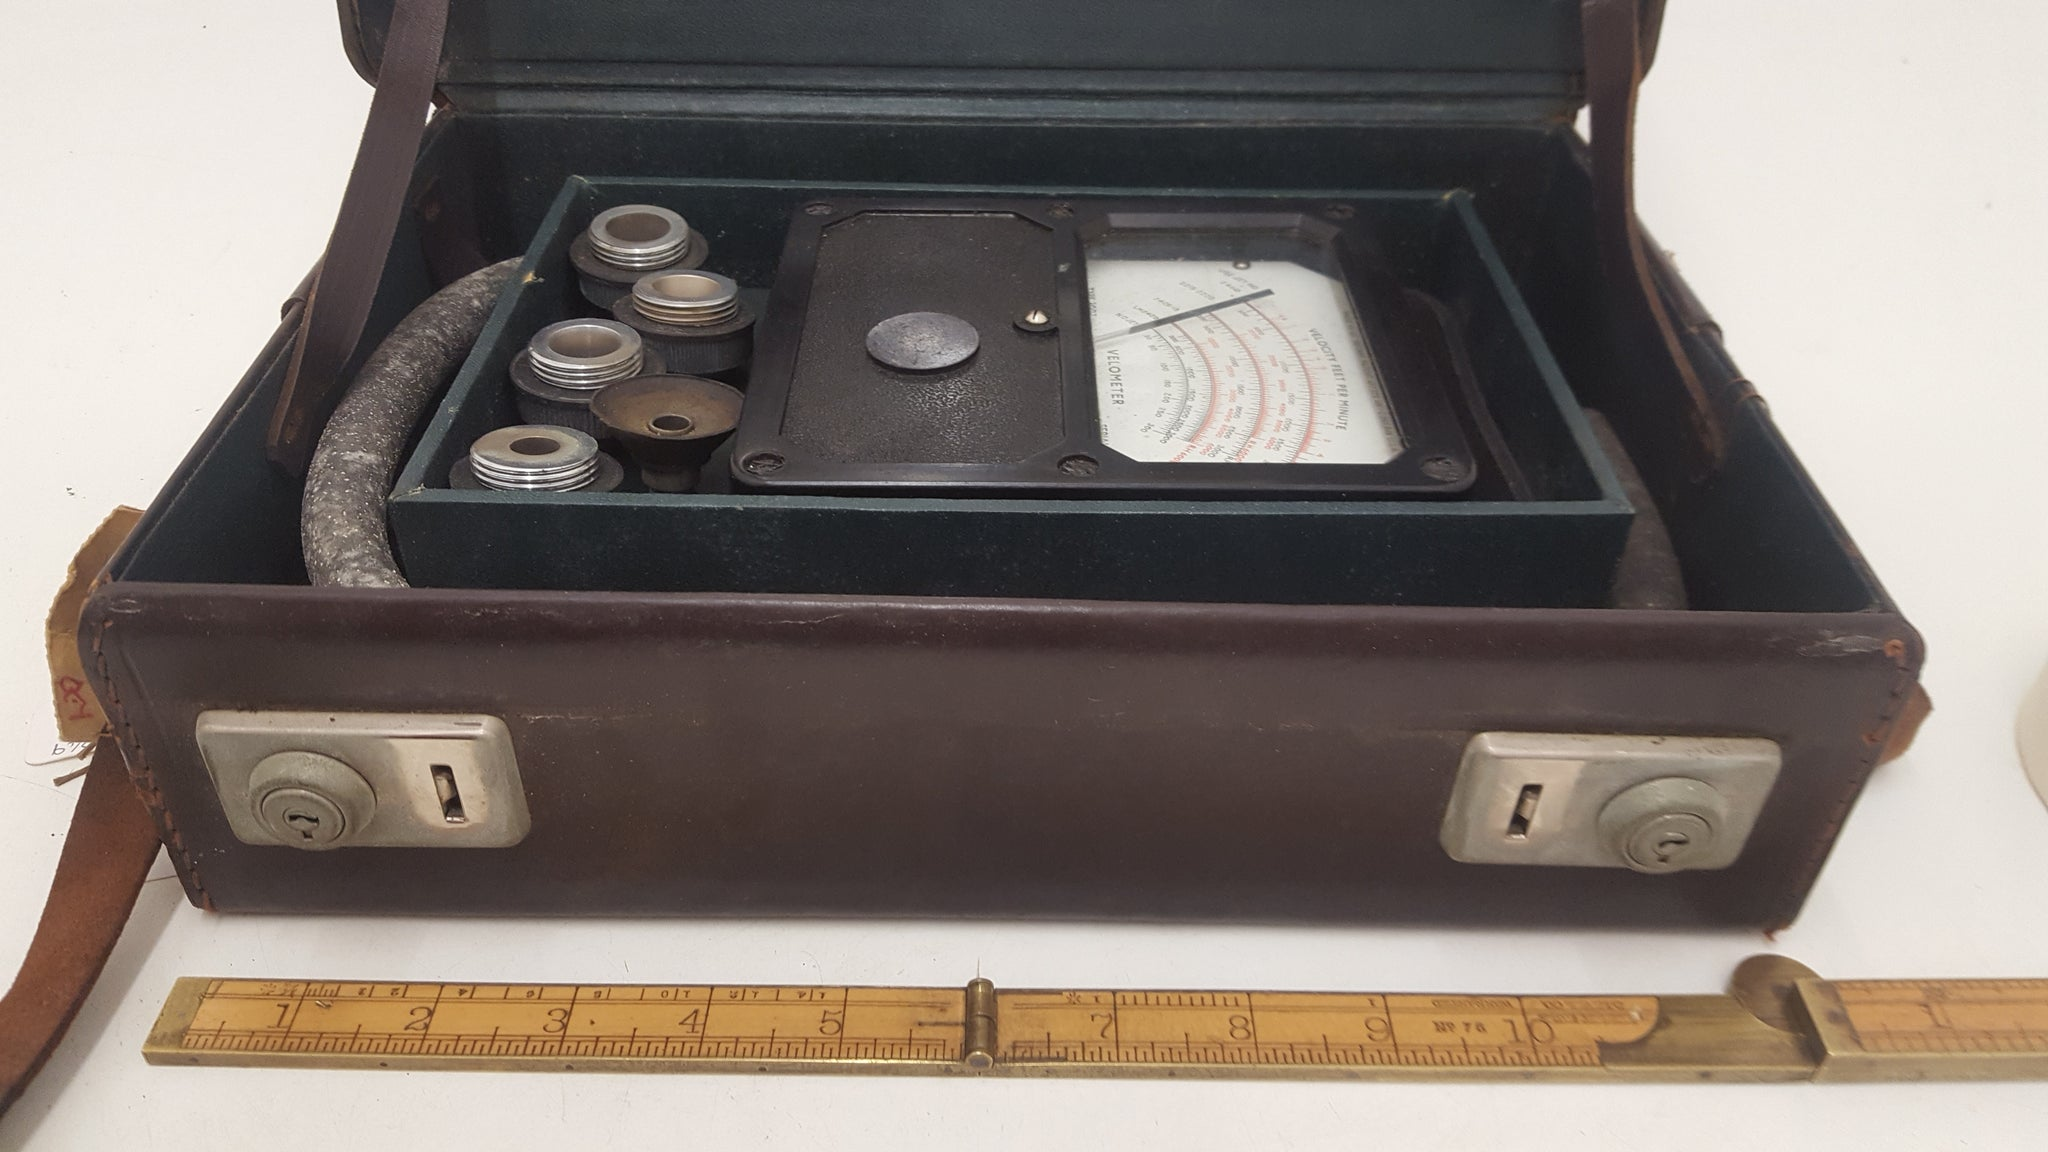 Metropolitan-Vickers Co Metrovick Velometer Leather Case VGC 17849